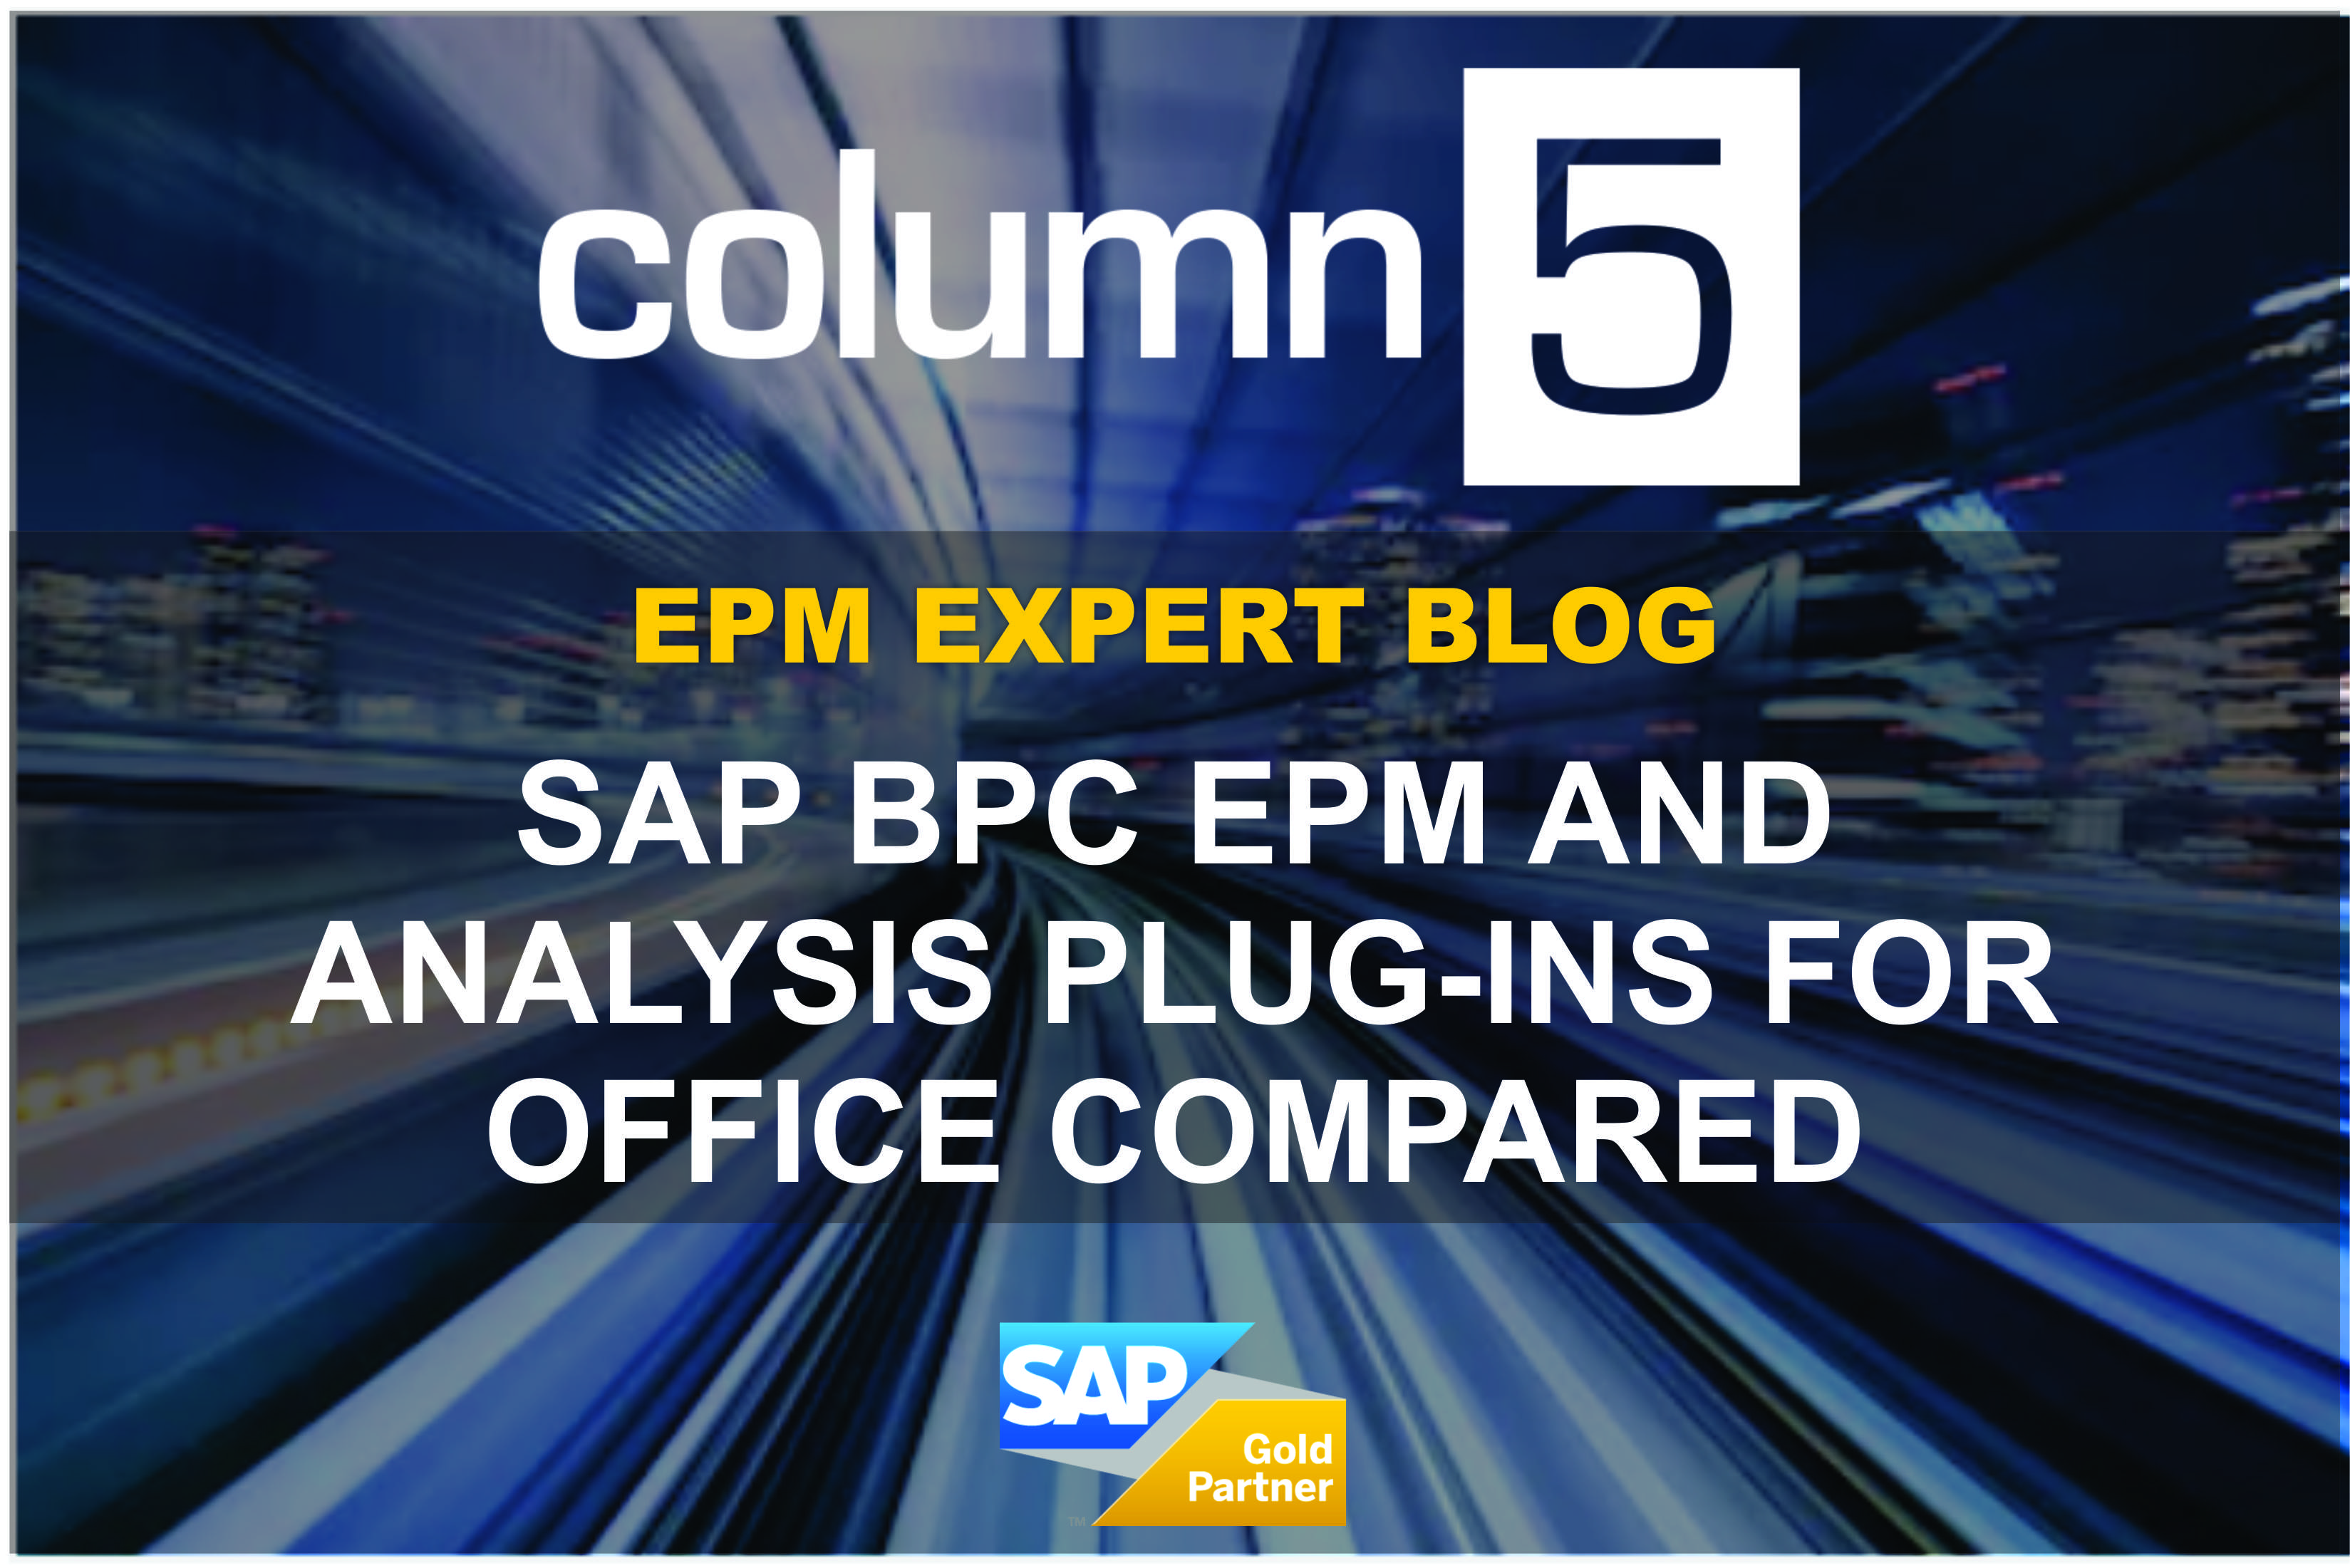 SAP BPC EPM and Analysis plug-ins for Office Compared